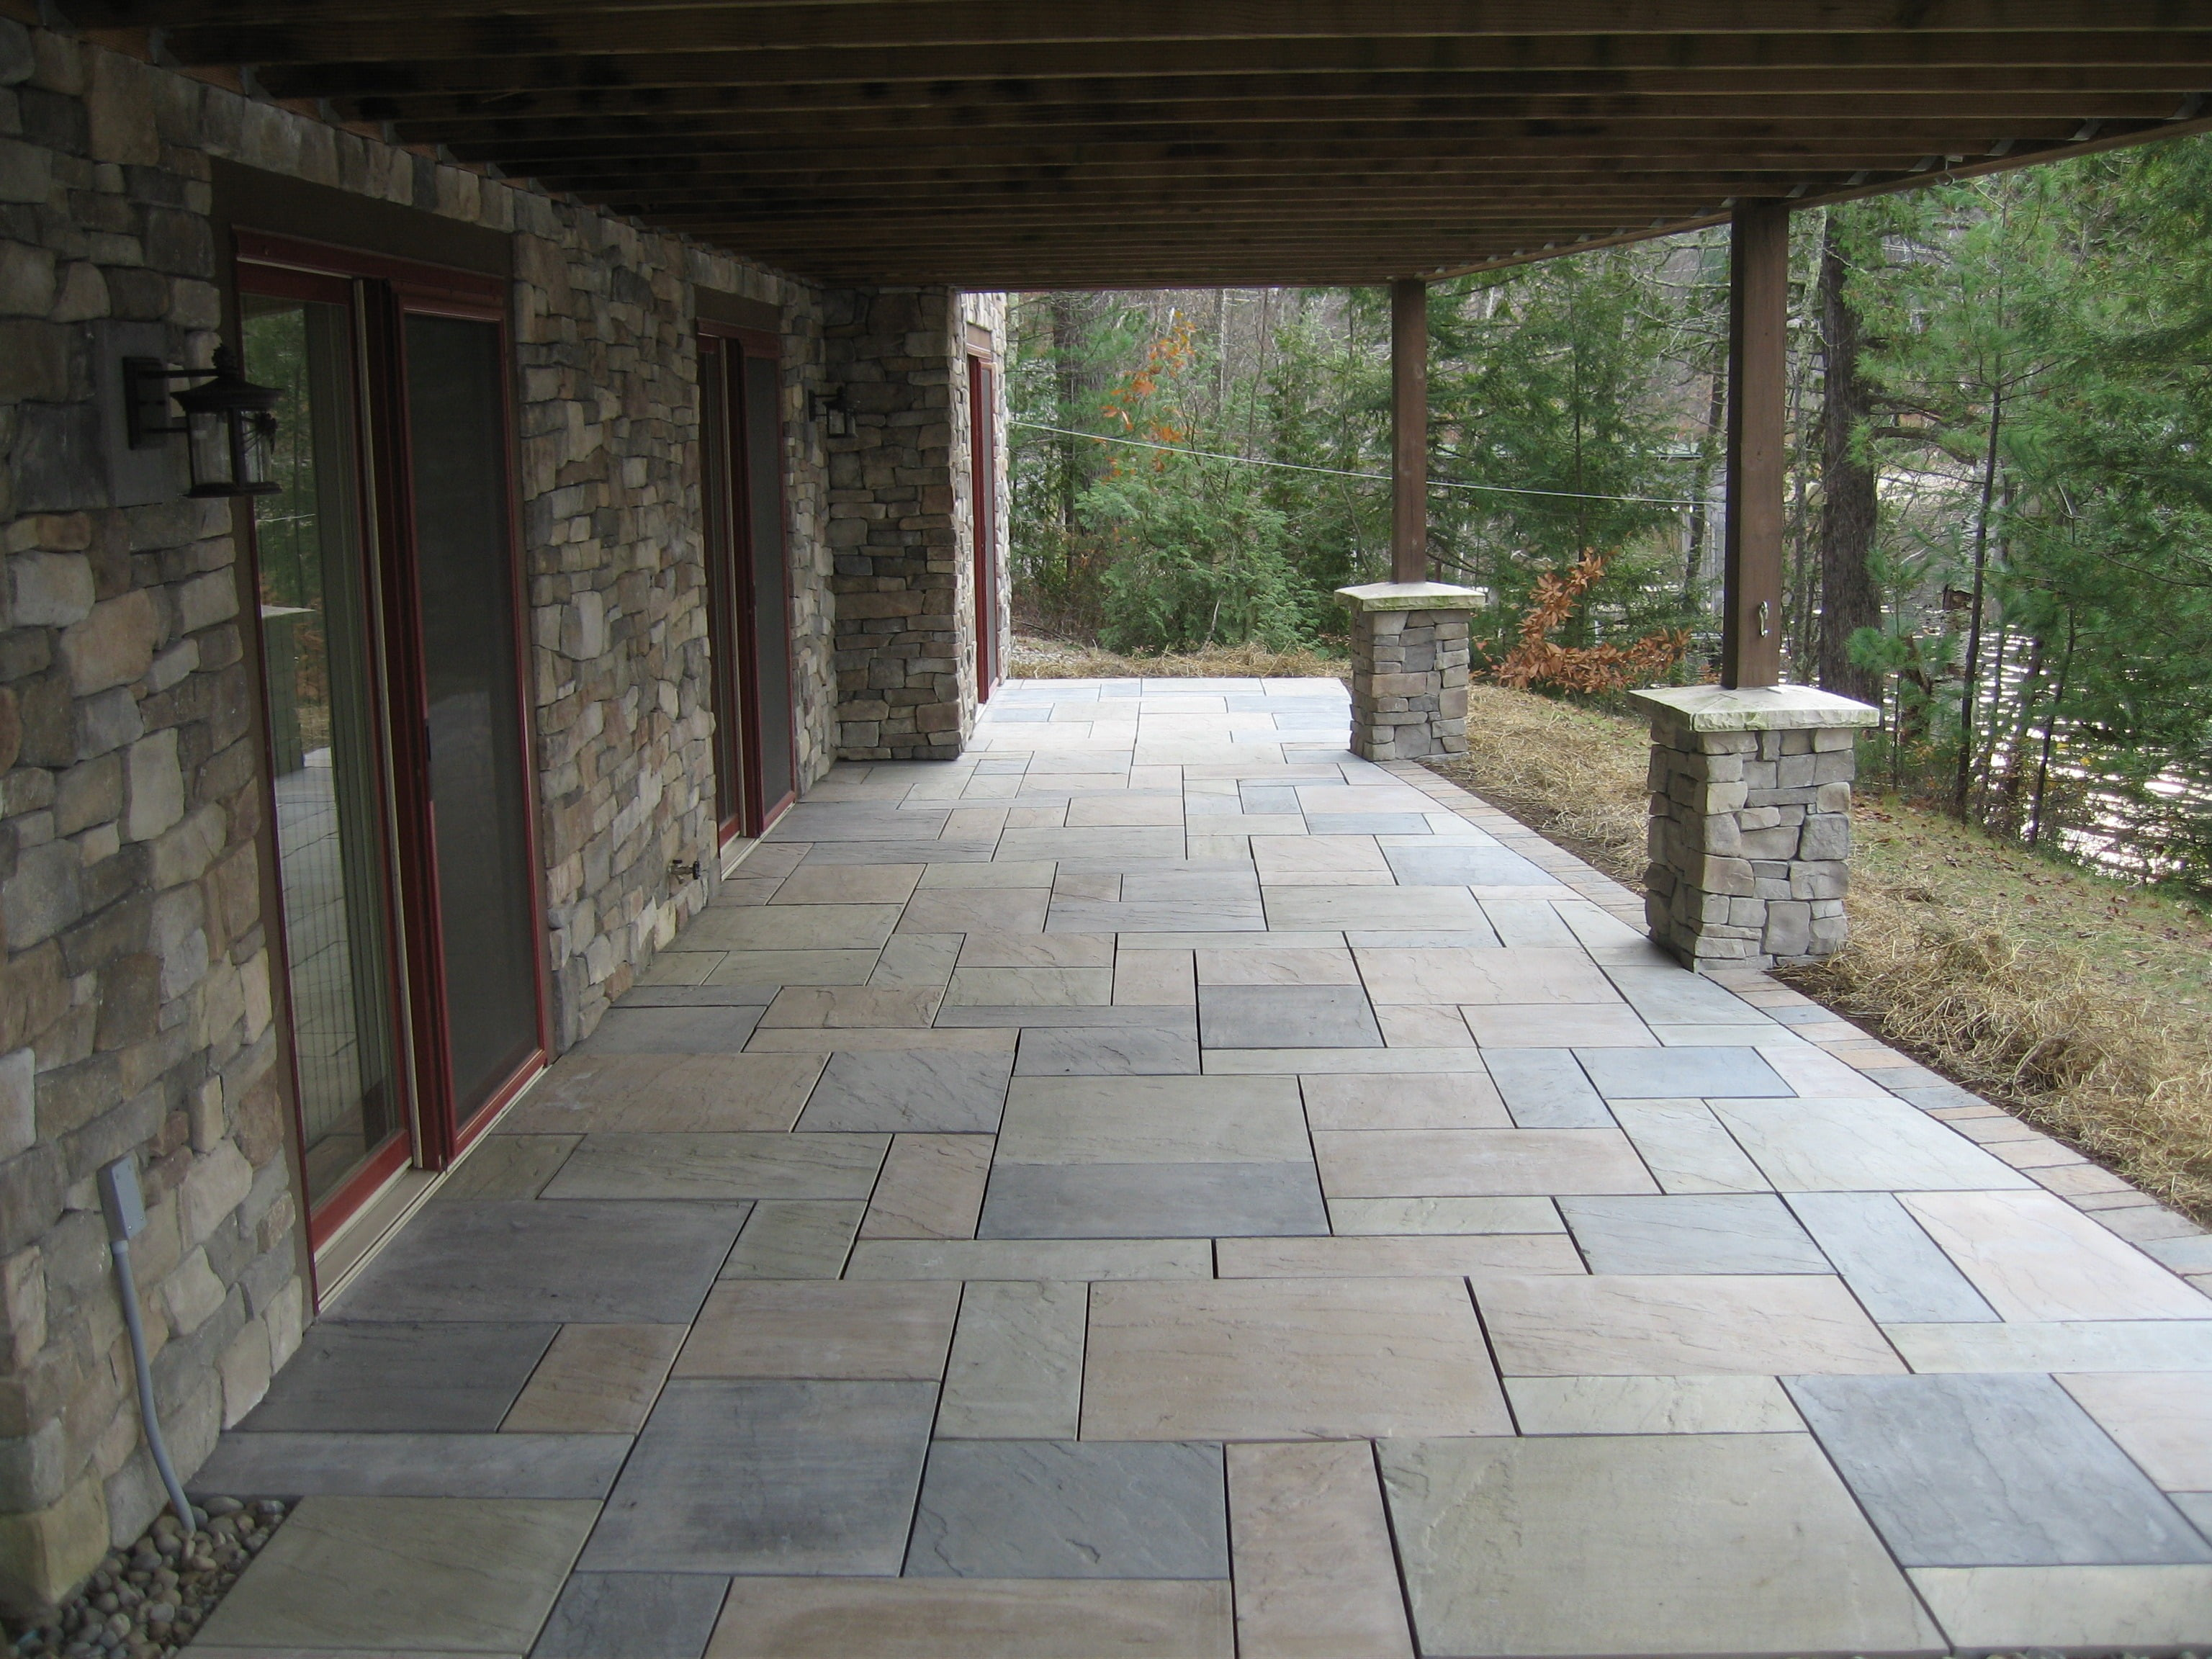 How To Pick The Best Pavers For Your Patio A Cut Above